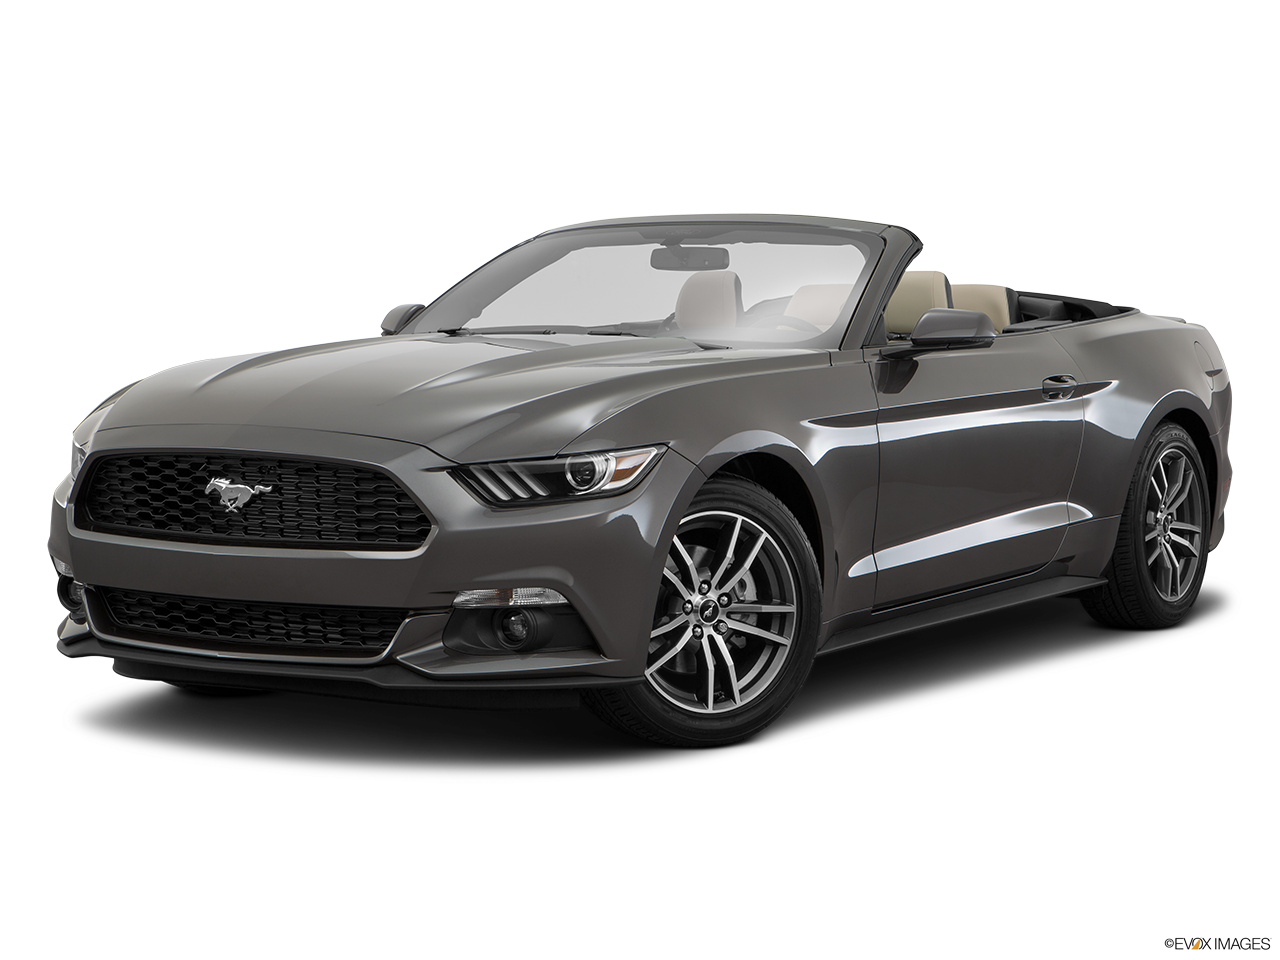 2016 ford mustang png. For sale near